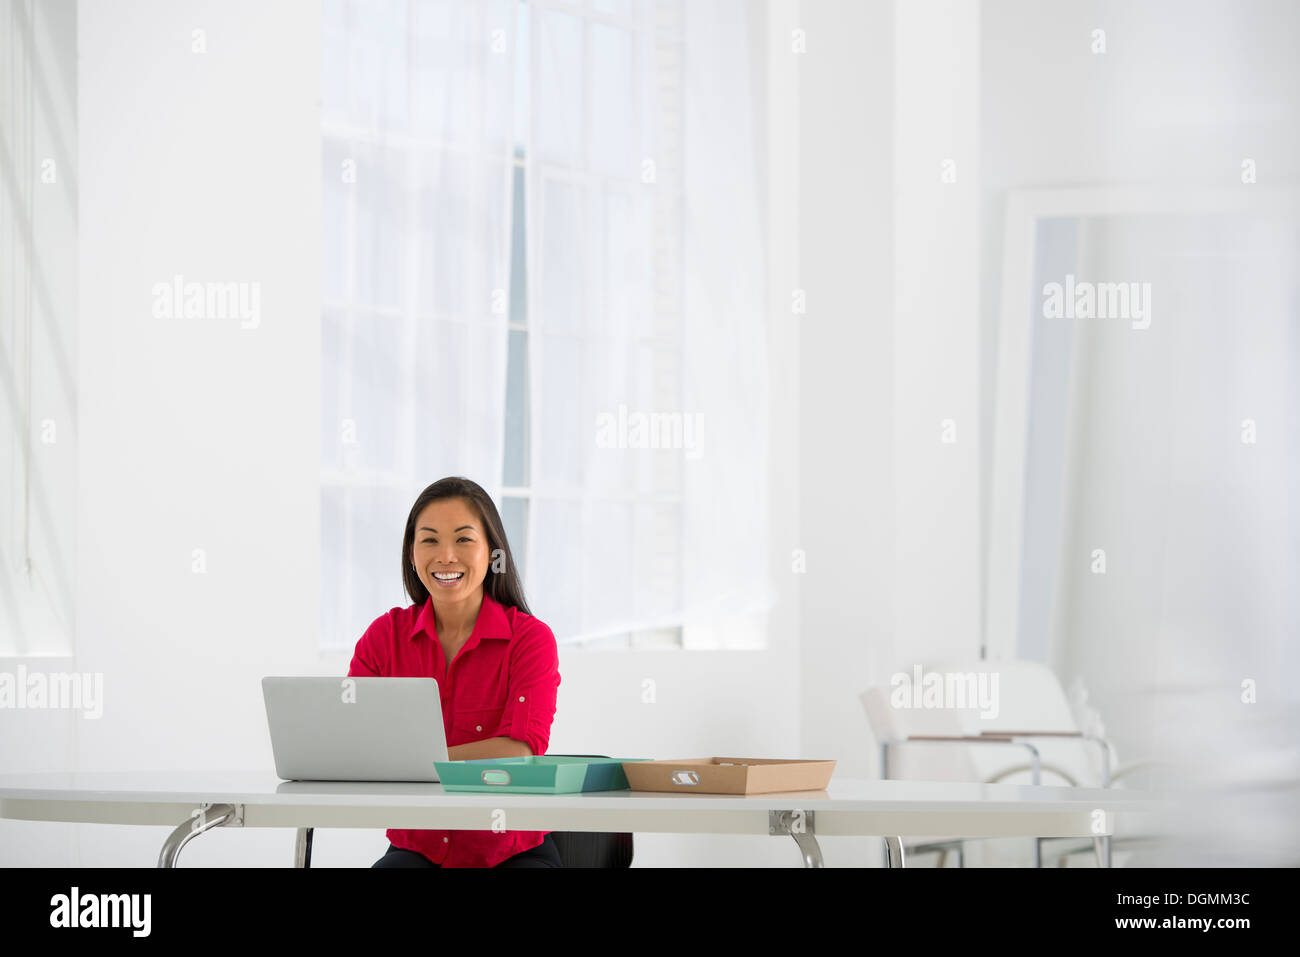 Asian businesswoman seated at desk using a laptop. - Stock Image